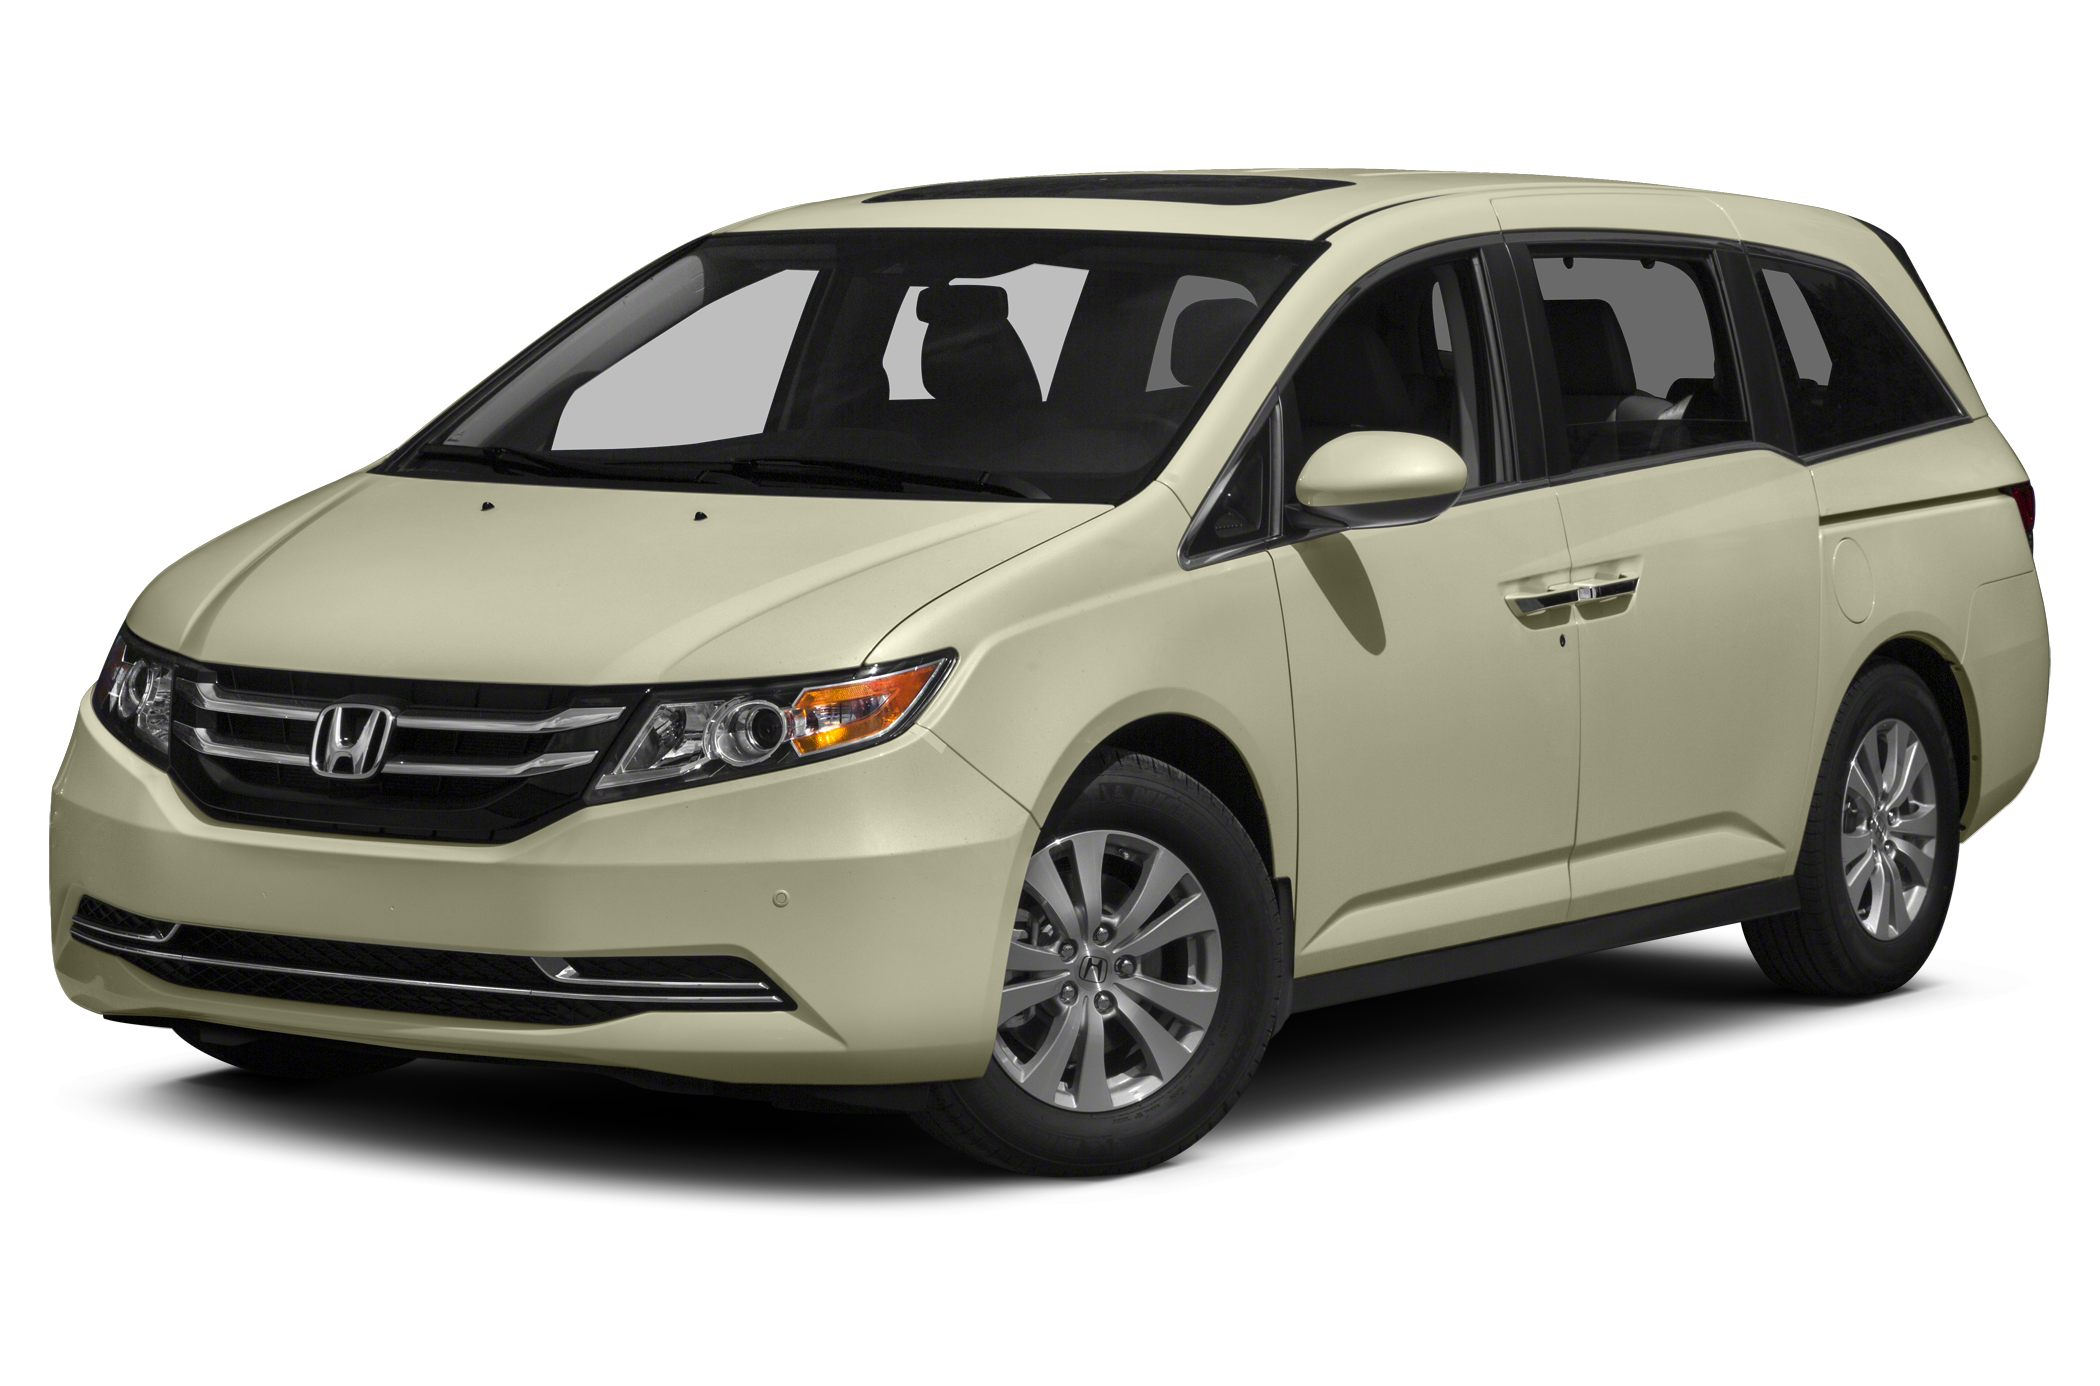 2014 Honda Odyssey EX-L w Navigation Digital odometer and traction control are features youre su